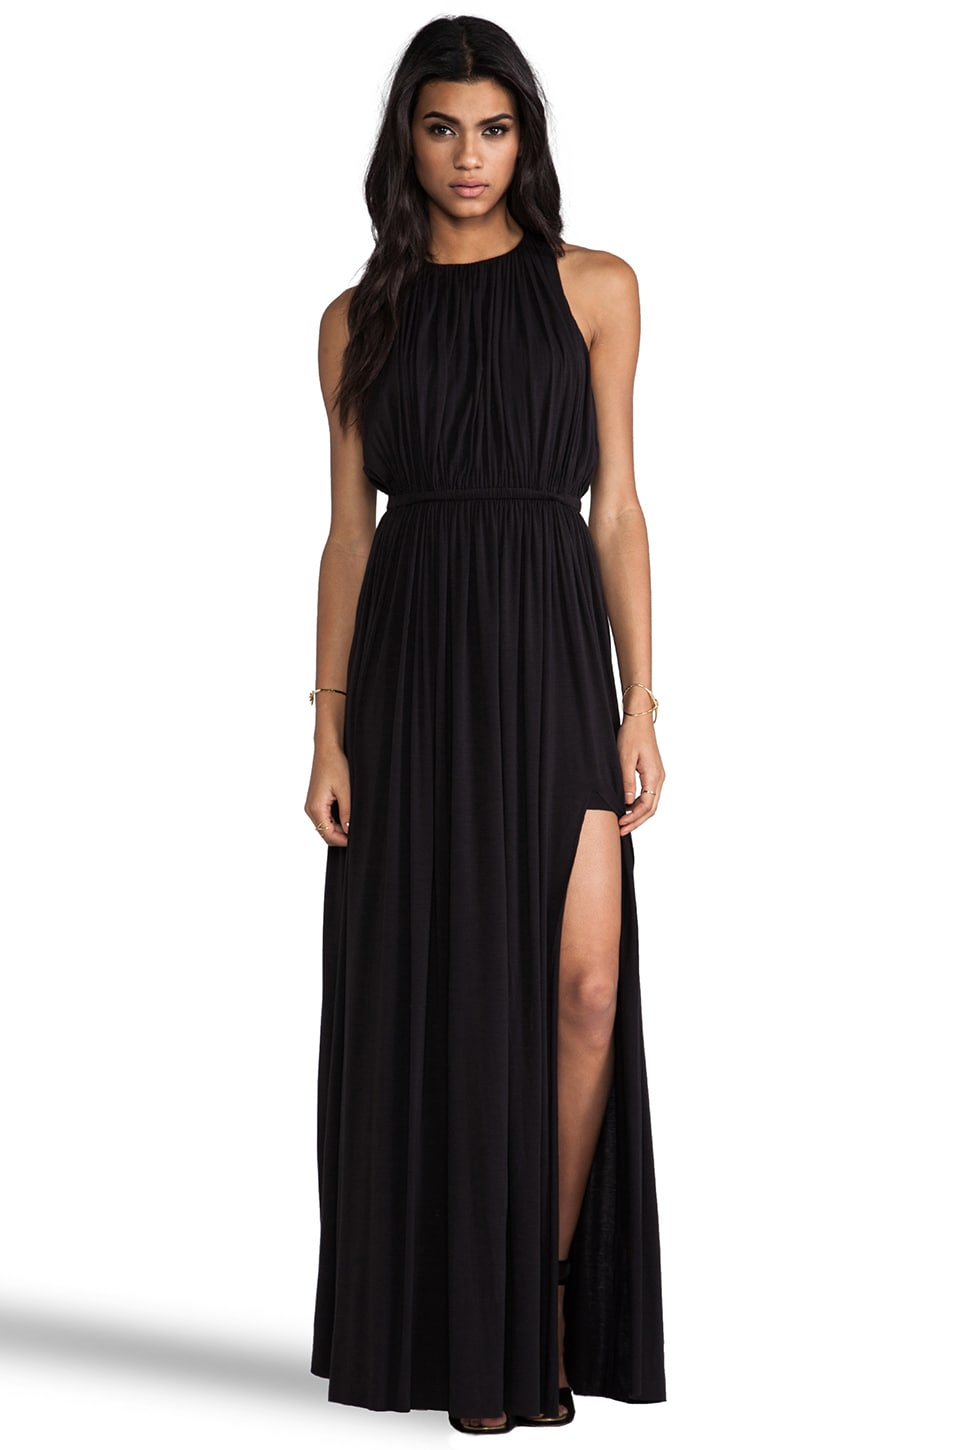 sen Flaviana Dress in Black